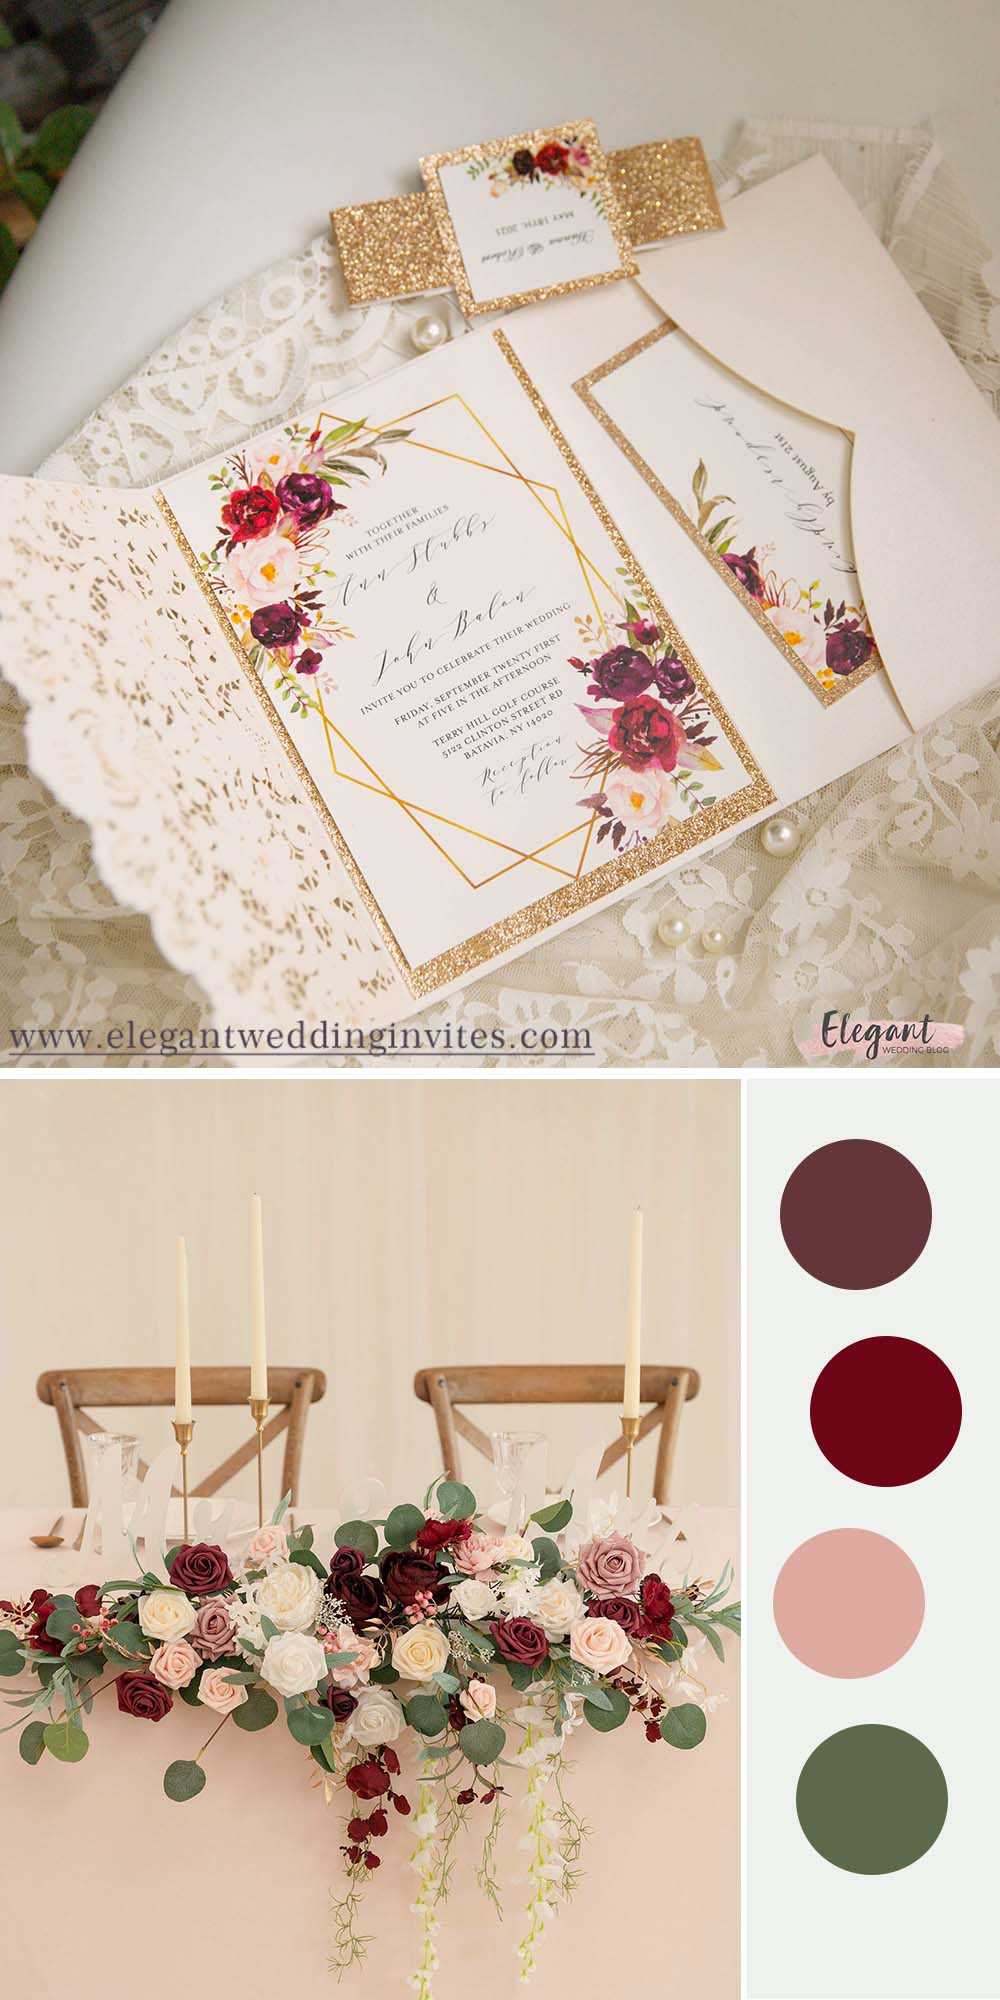 classic burgundy and blush floral pattern wedding color ideas